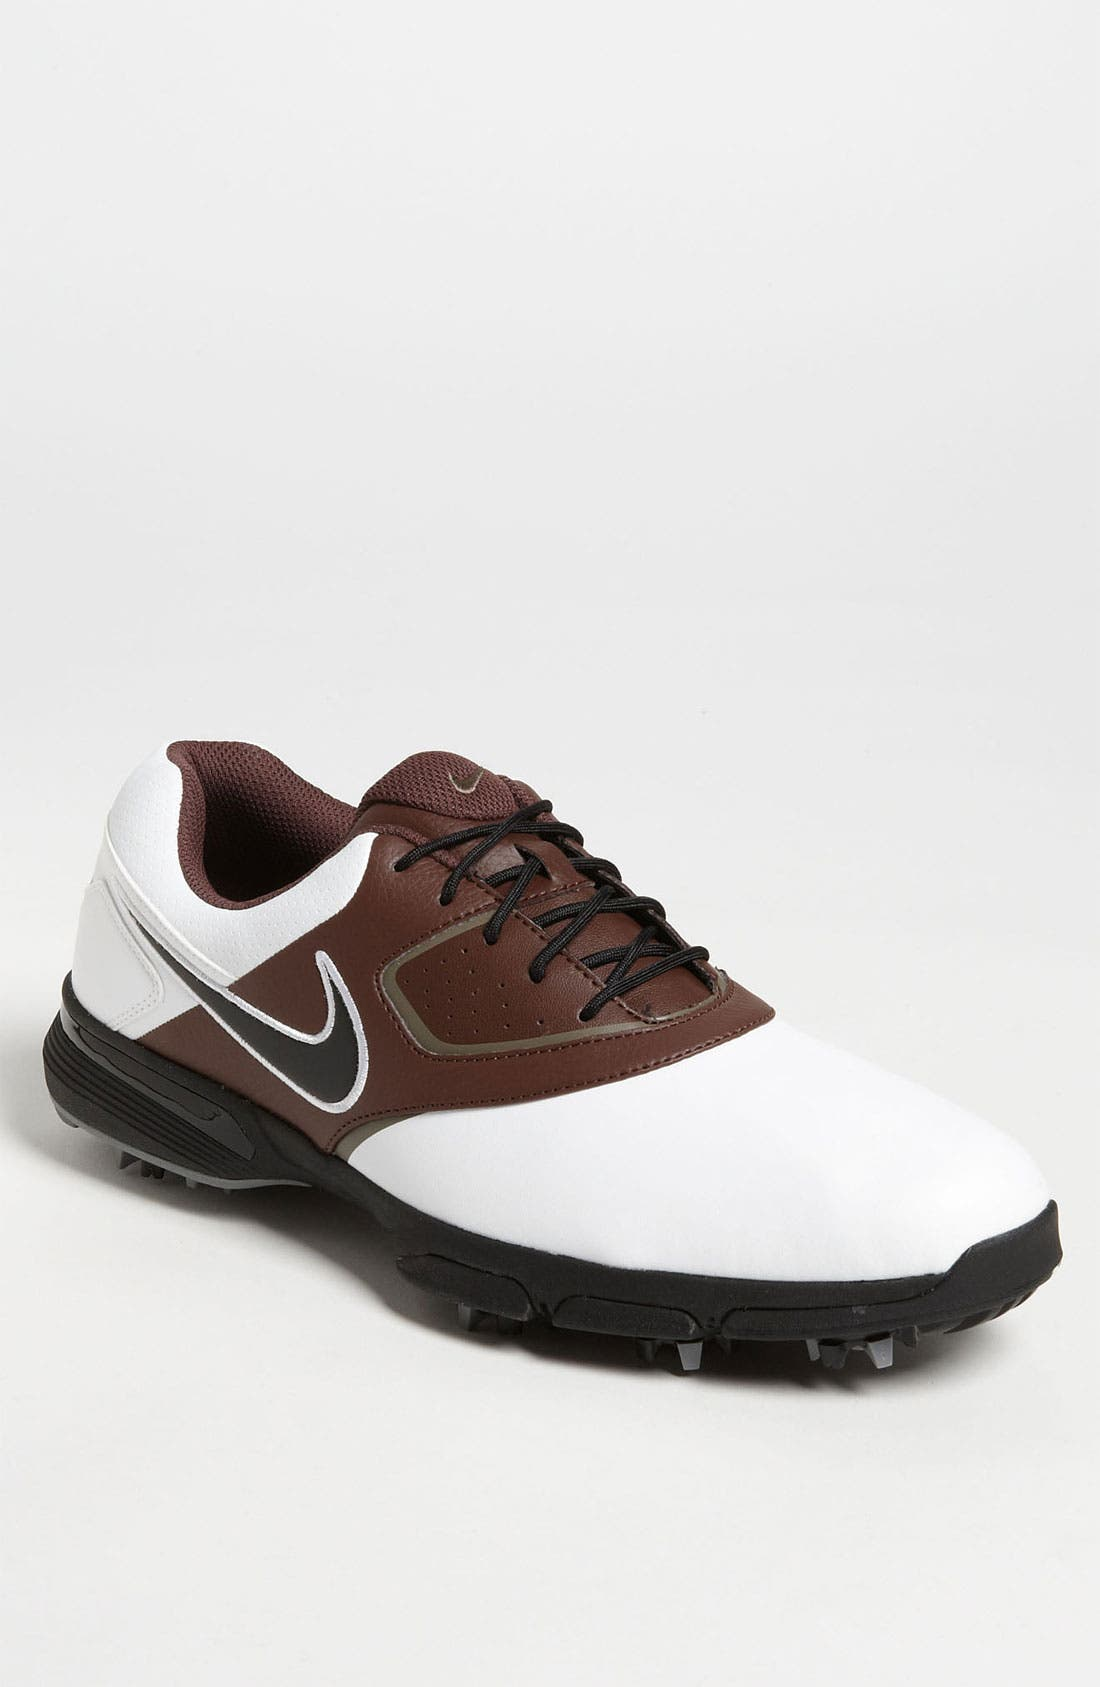 Alternate Image 1 Selected - Nike 'Heritage' Golf Shoe (Men)